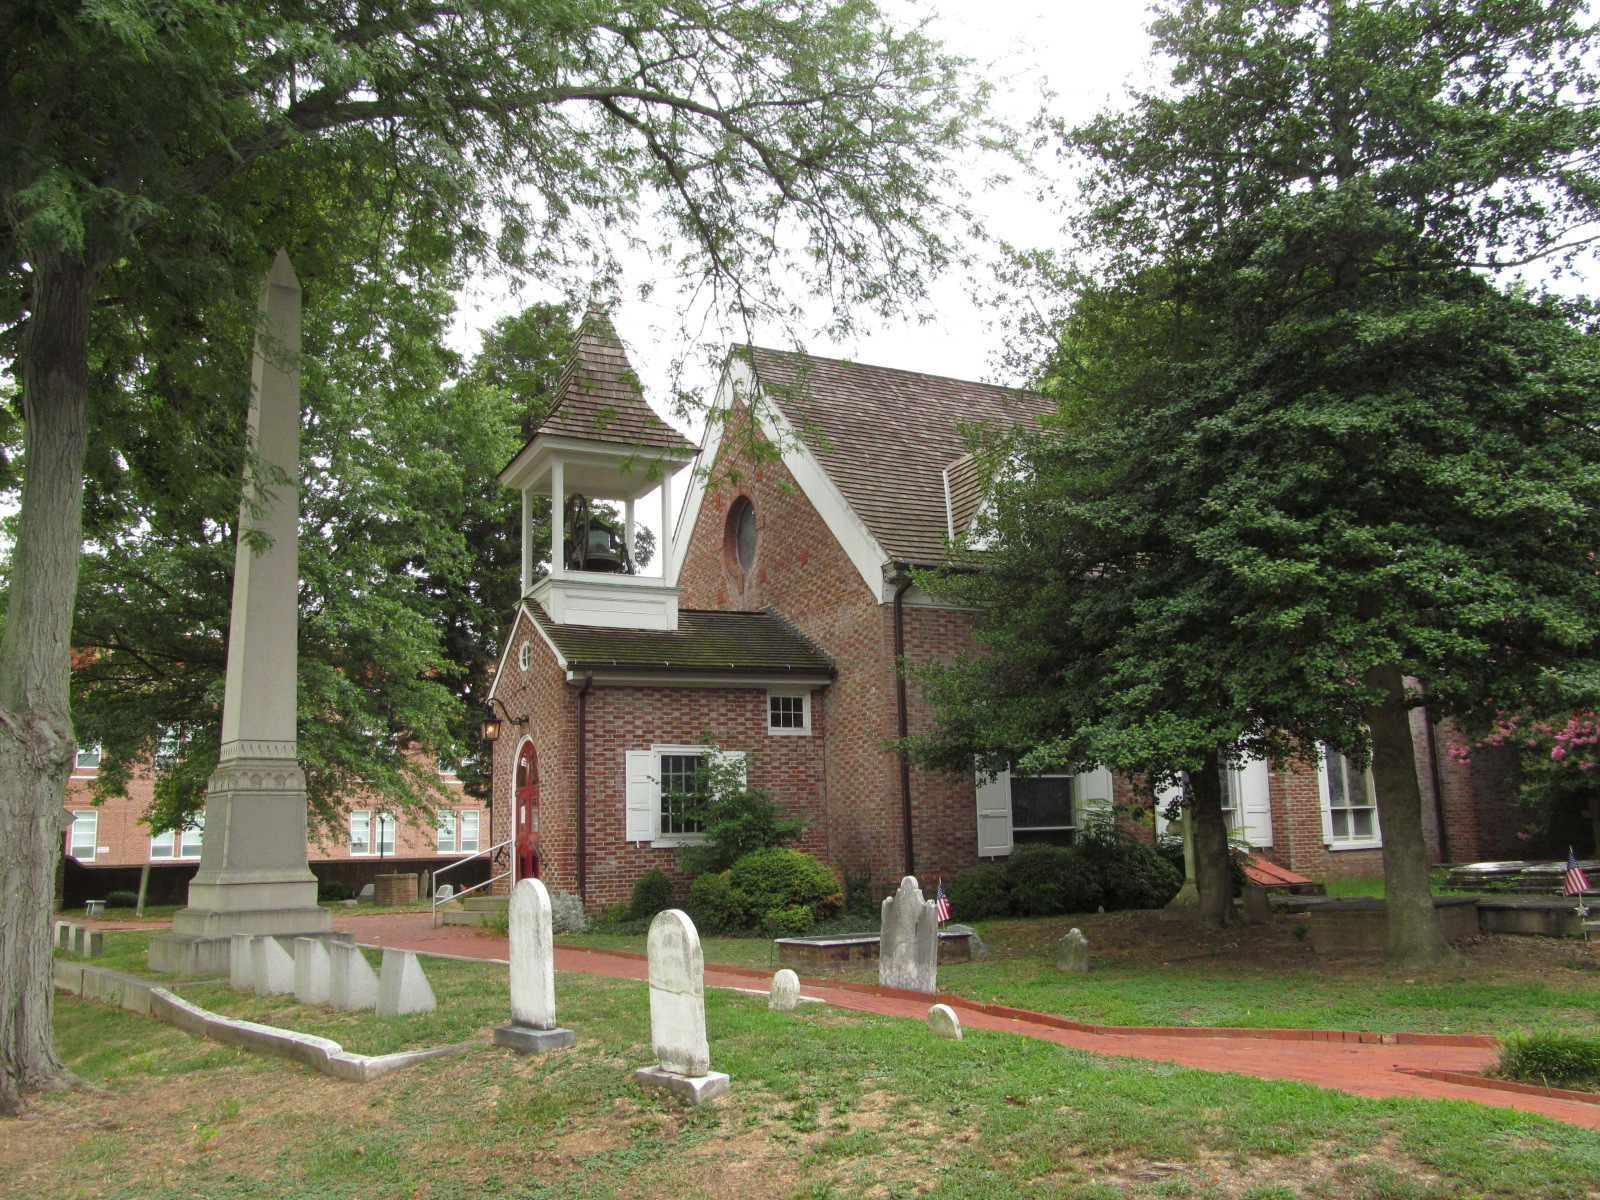 Christ_Church_%28Dover%2C_Delaware%29_west_entrance_and_bell_tower.JPG